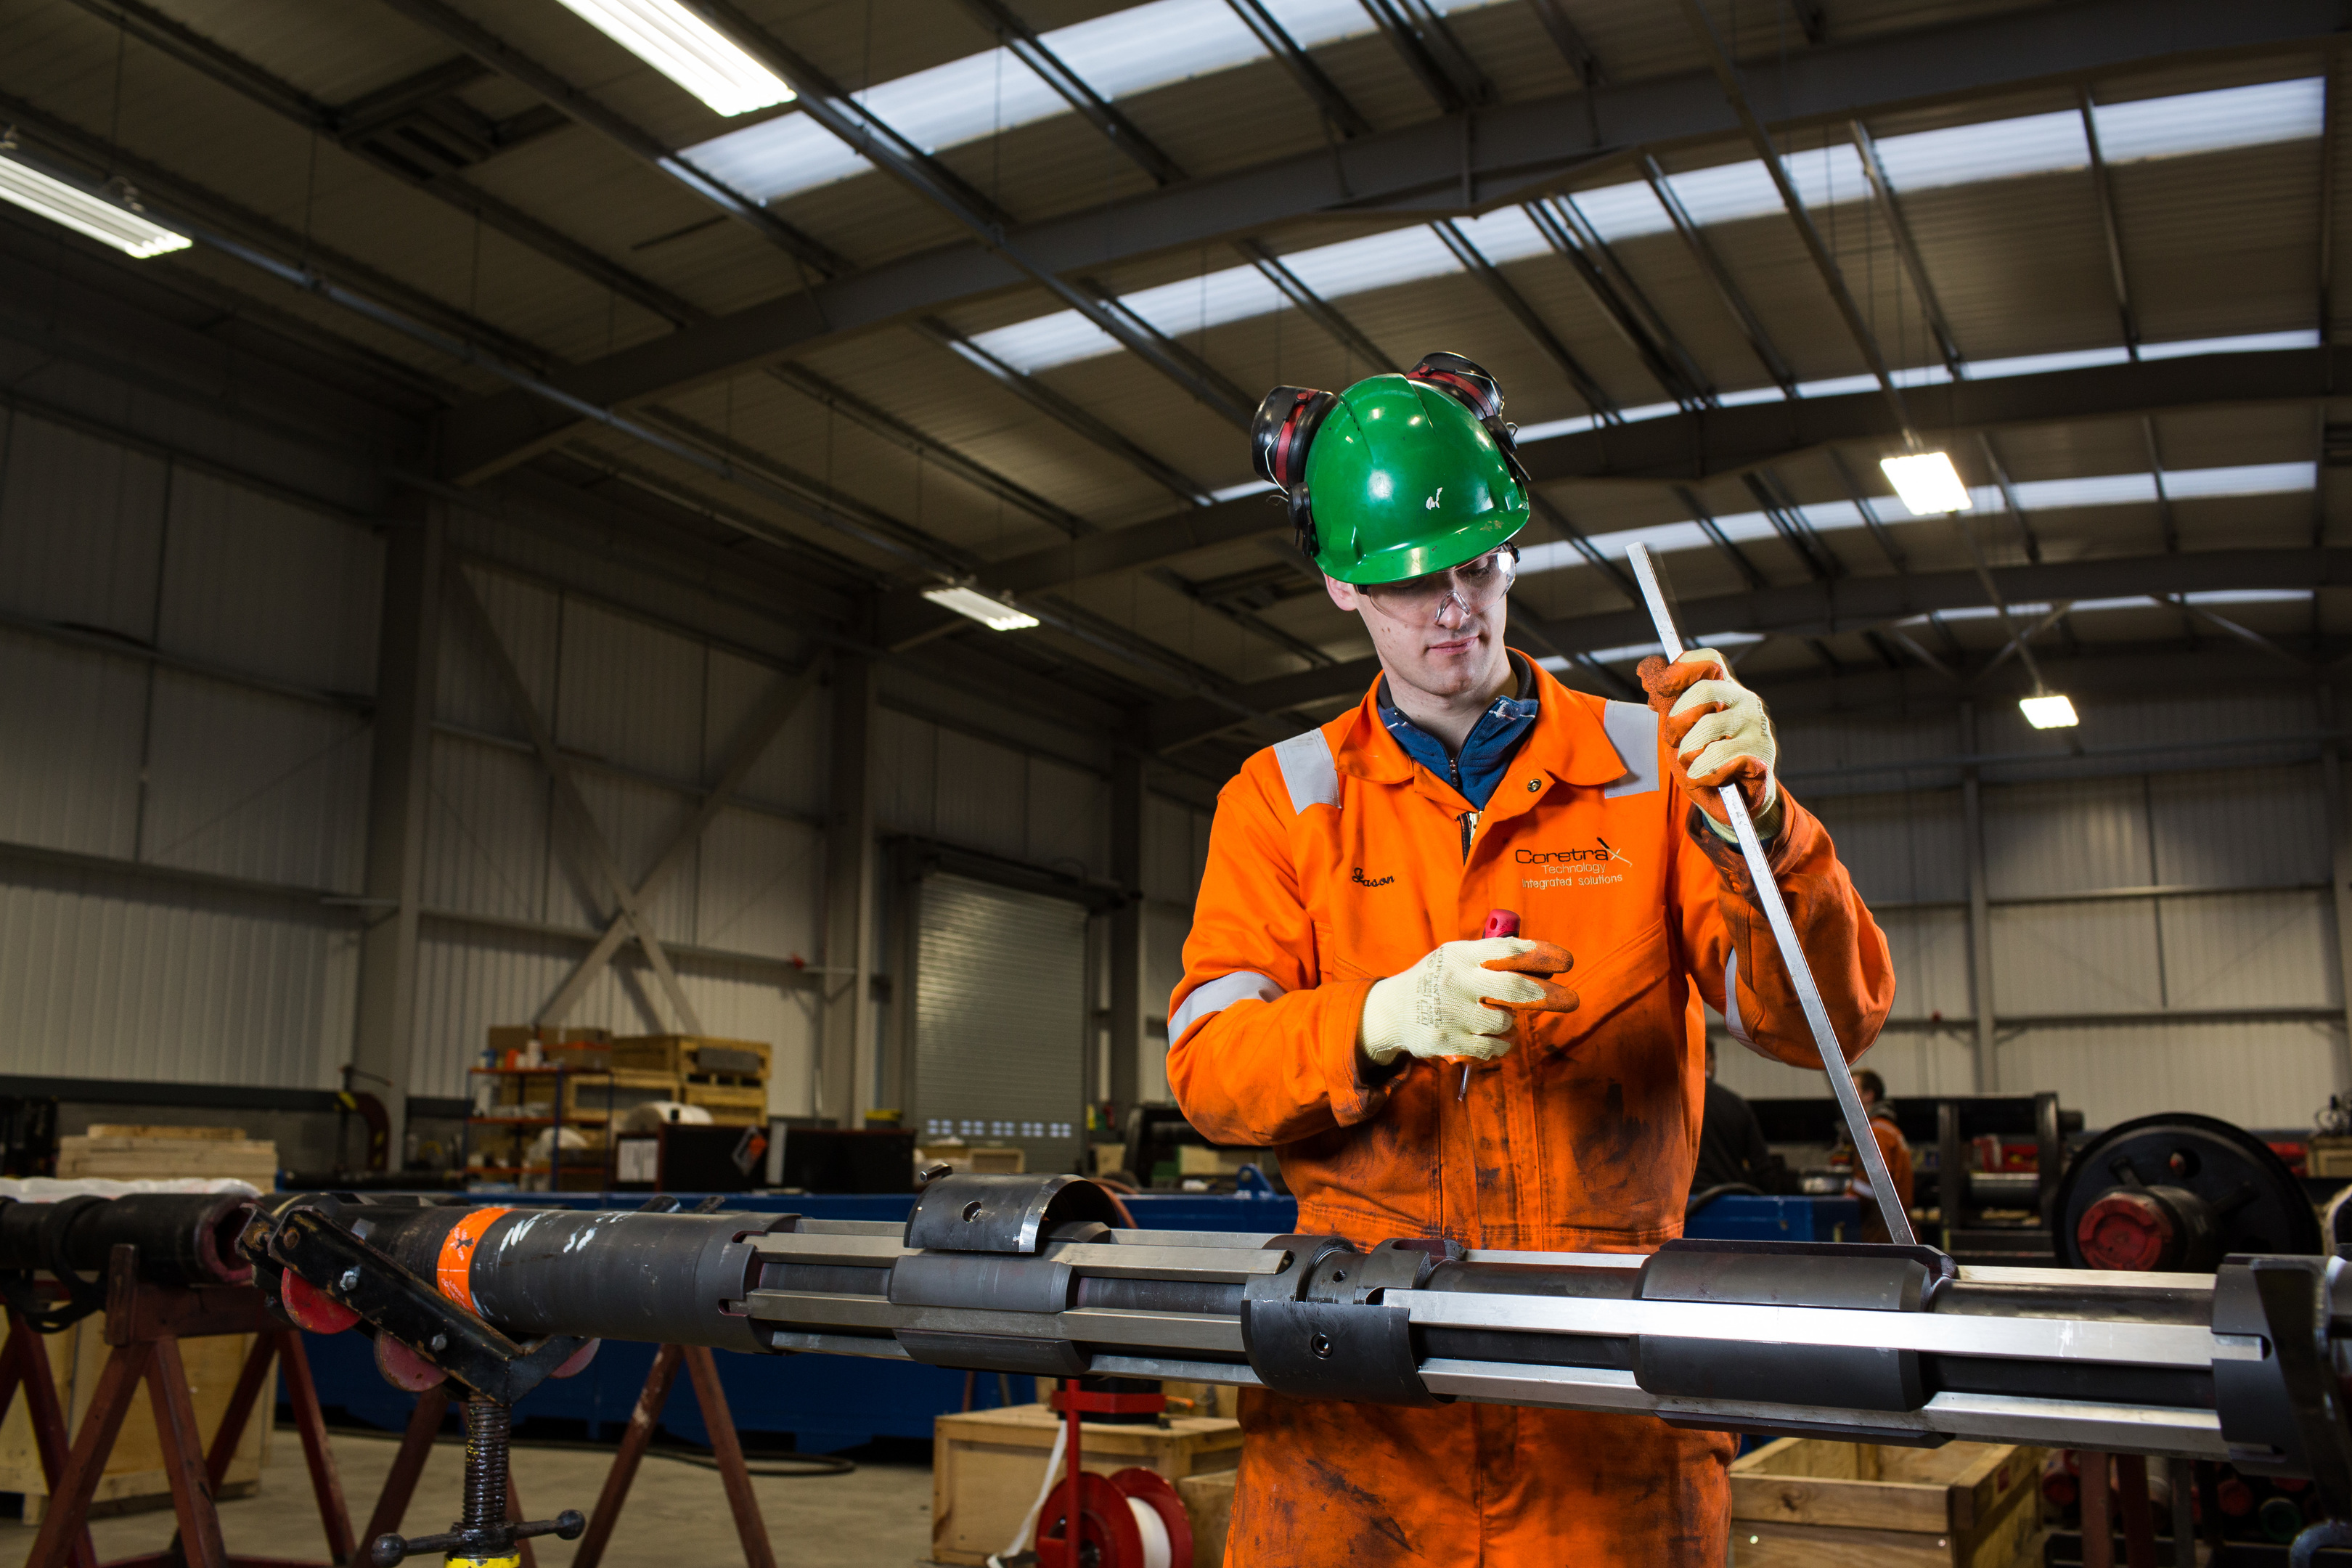 An engineer at work at Coretrax's Aberdeen facility.